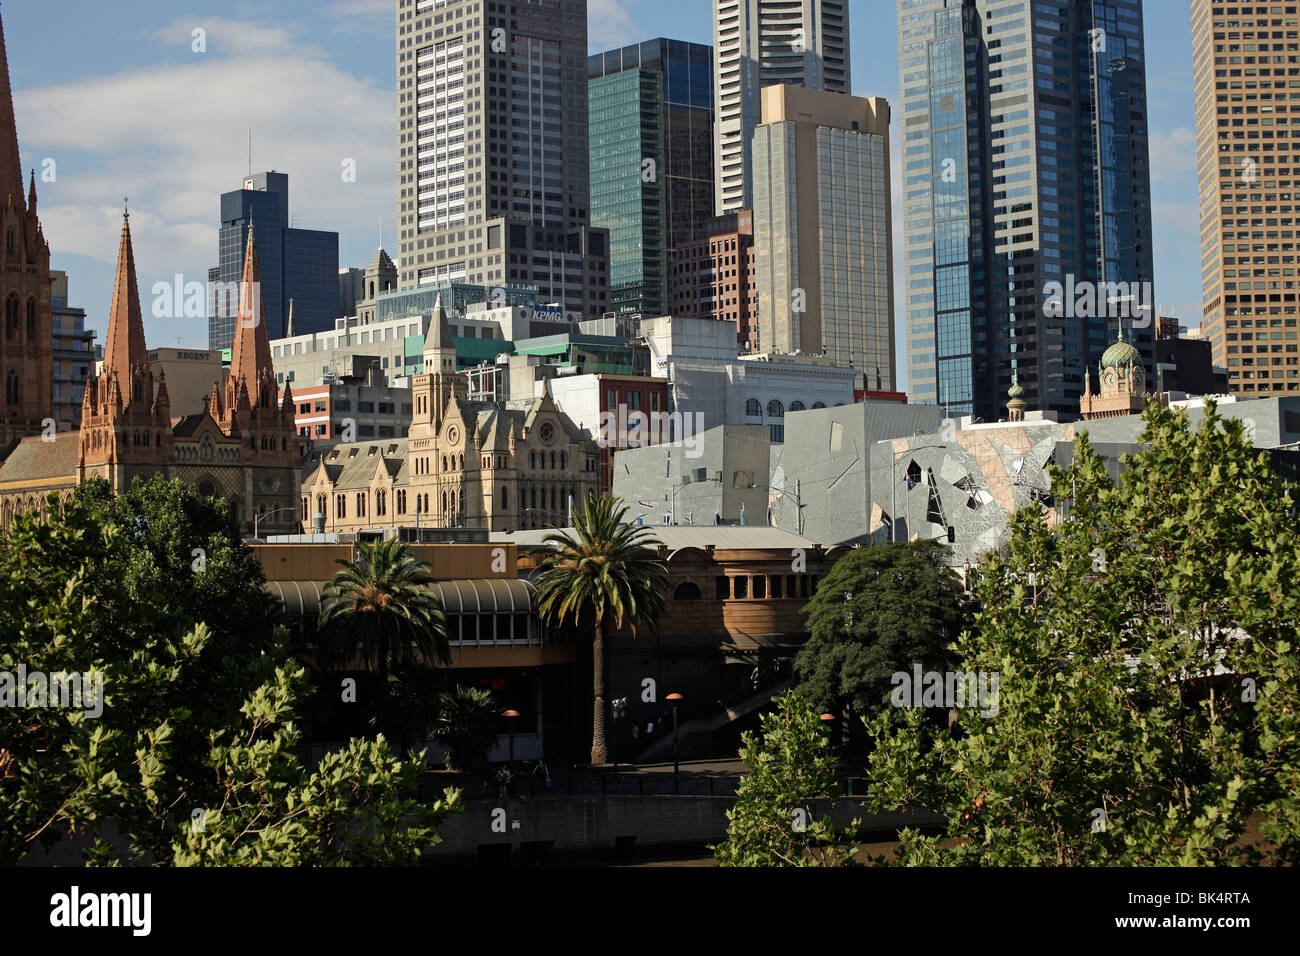 Melbourne Skyline with the towers of St Paul's Cathedral, Victoria, Australia - Stock Image